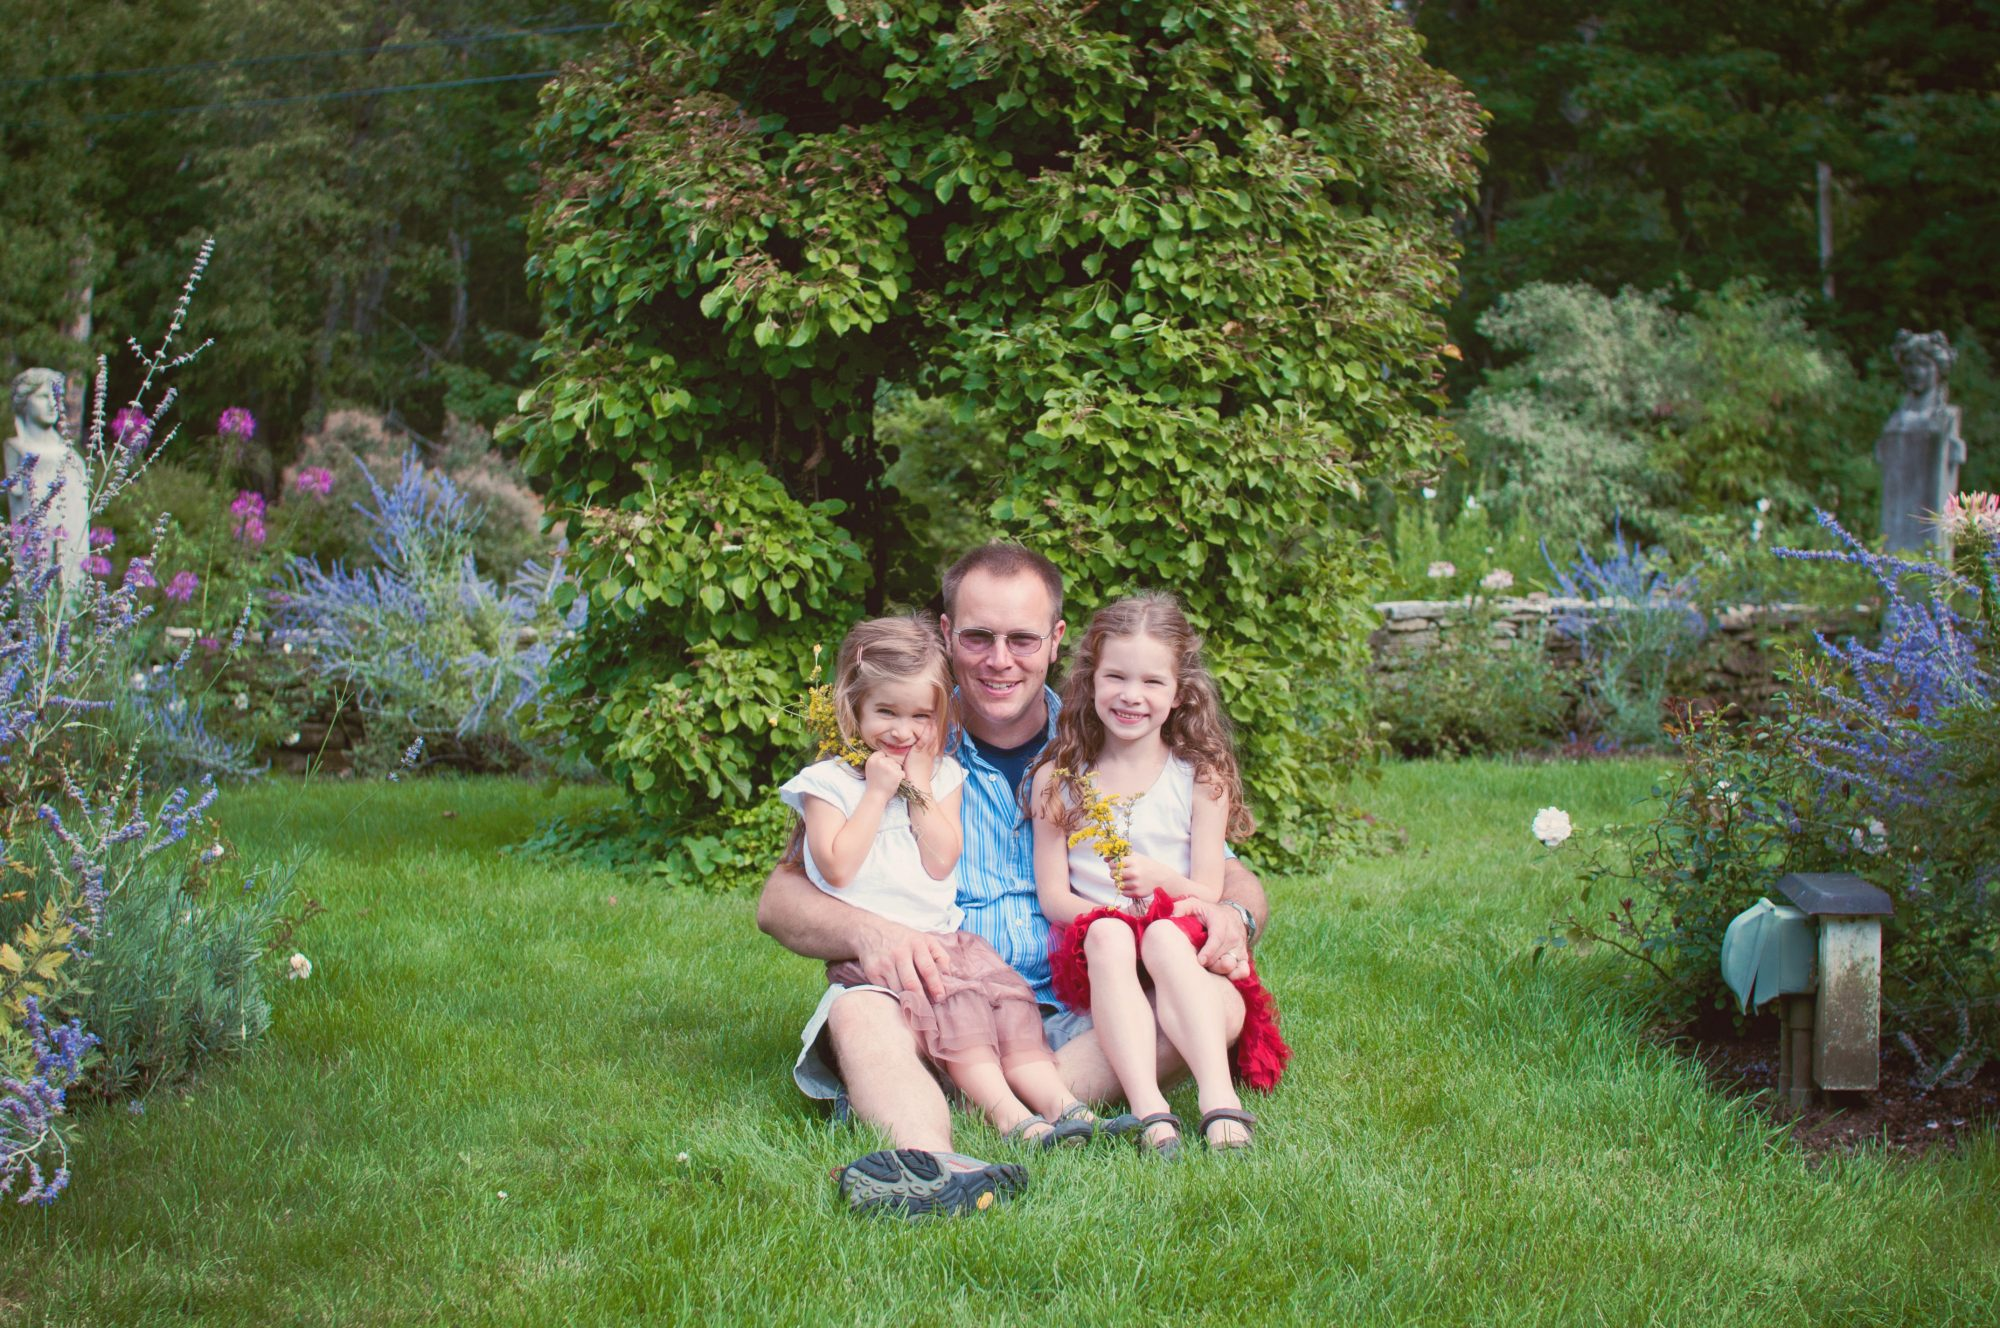 Father and two daughters in a garden